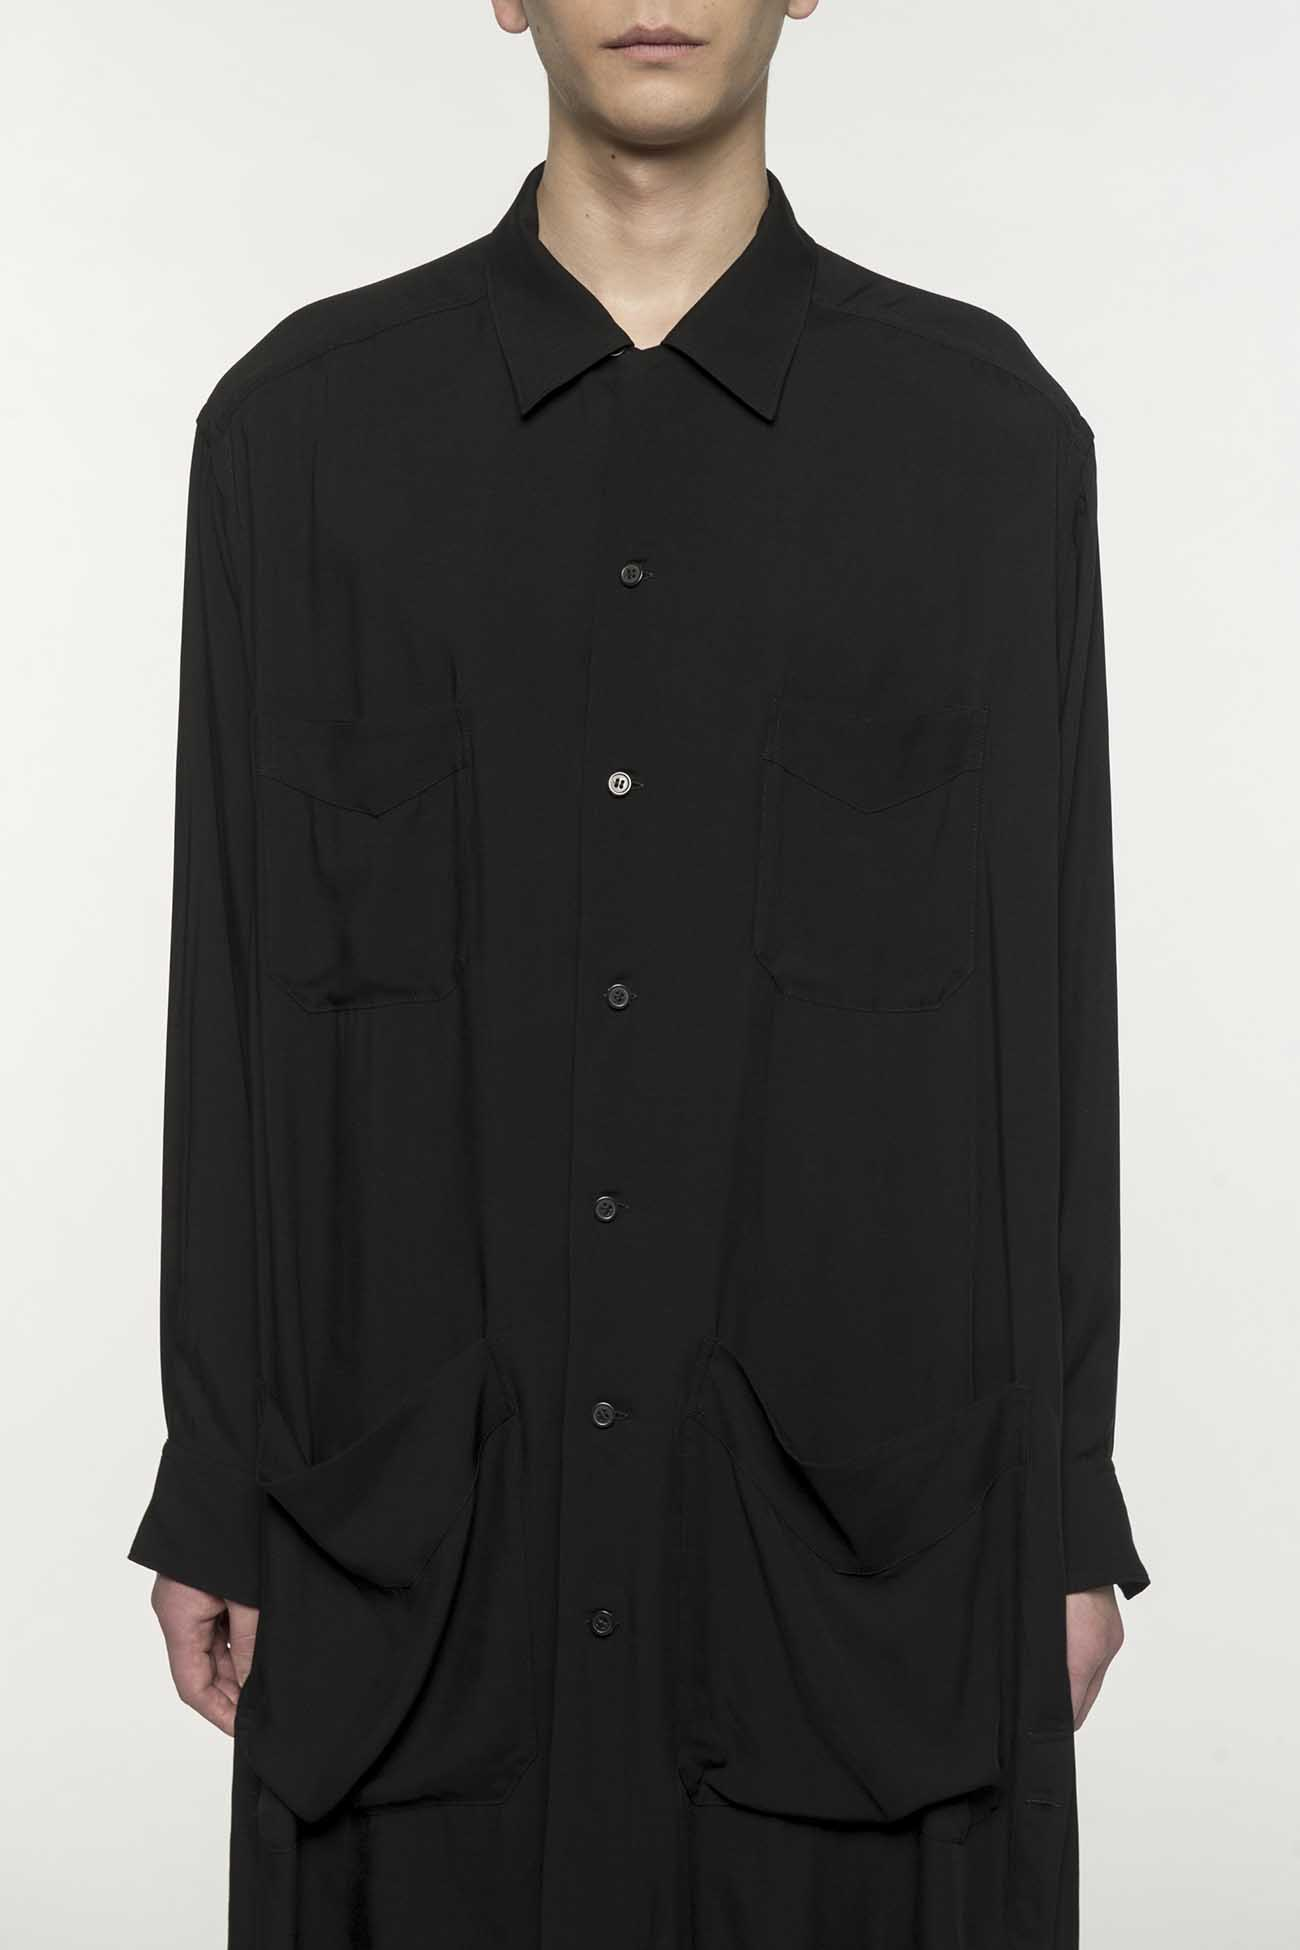 60s Ry/Span Twill Washer 4 Pocket Open Long Shirt